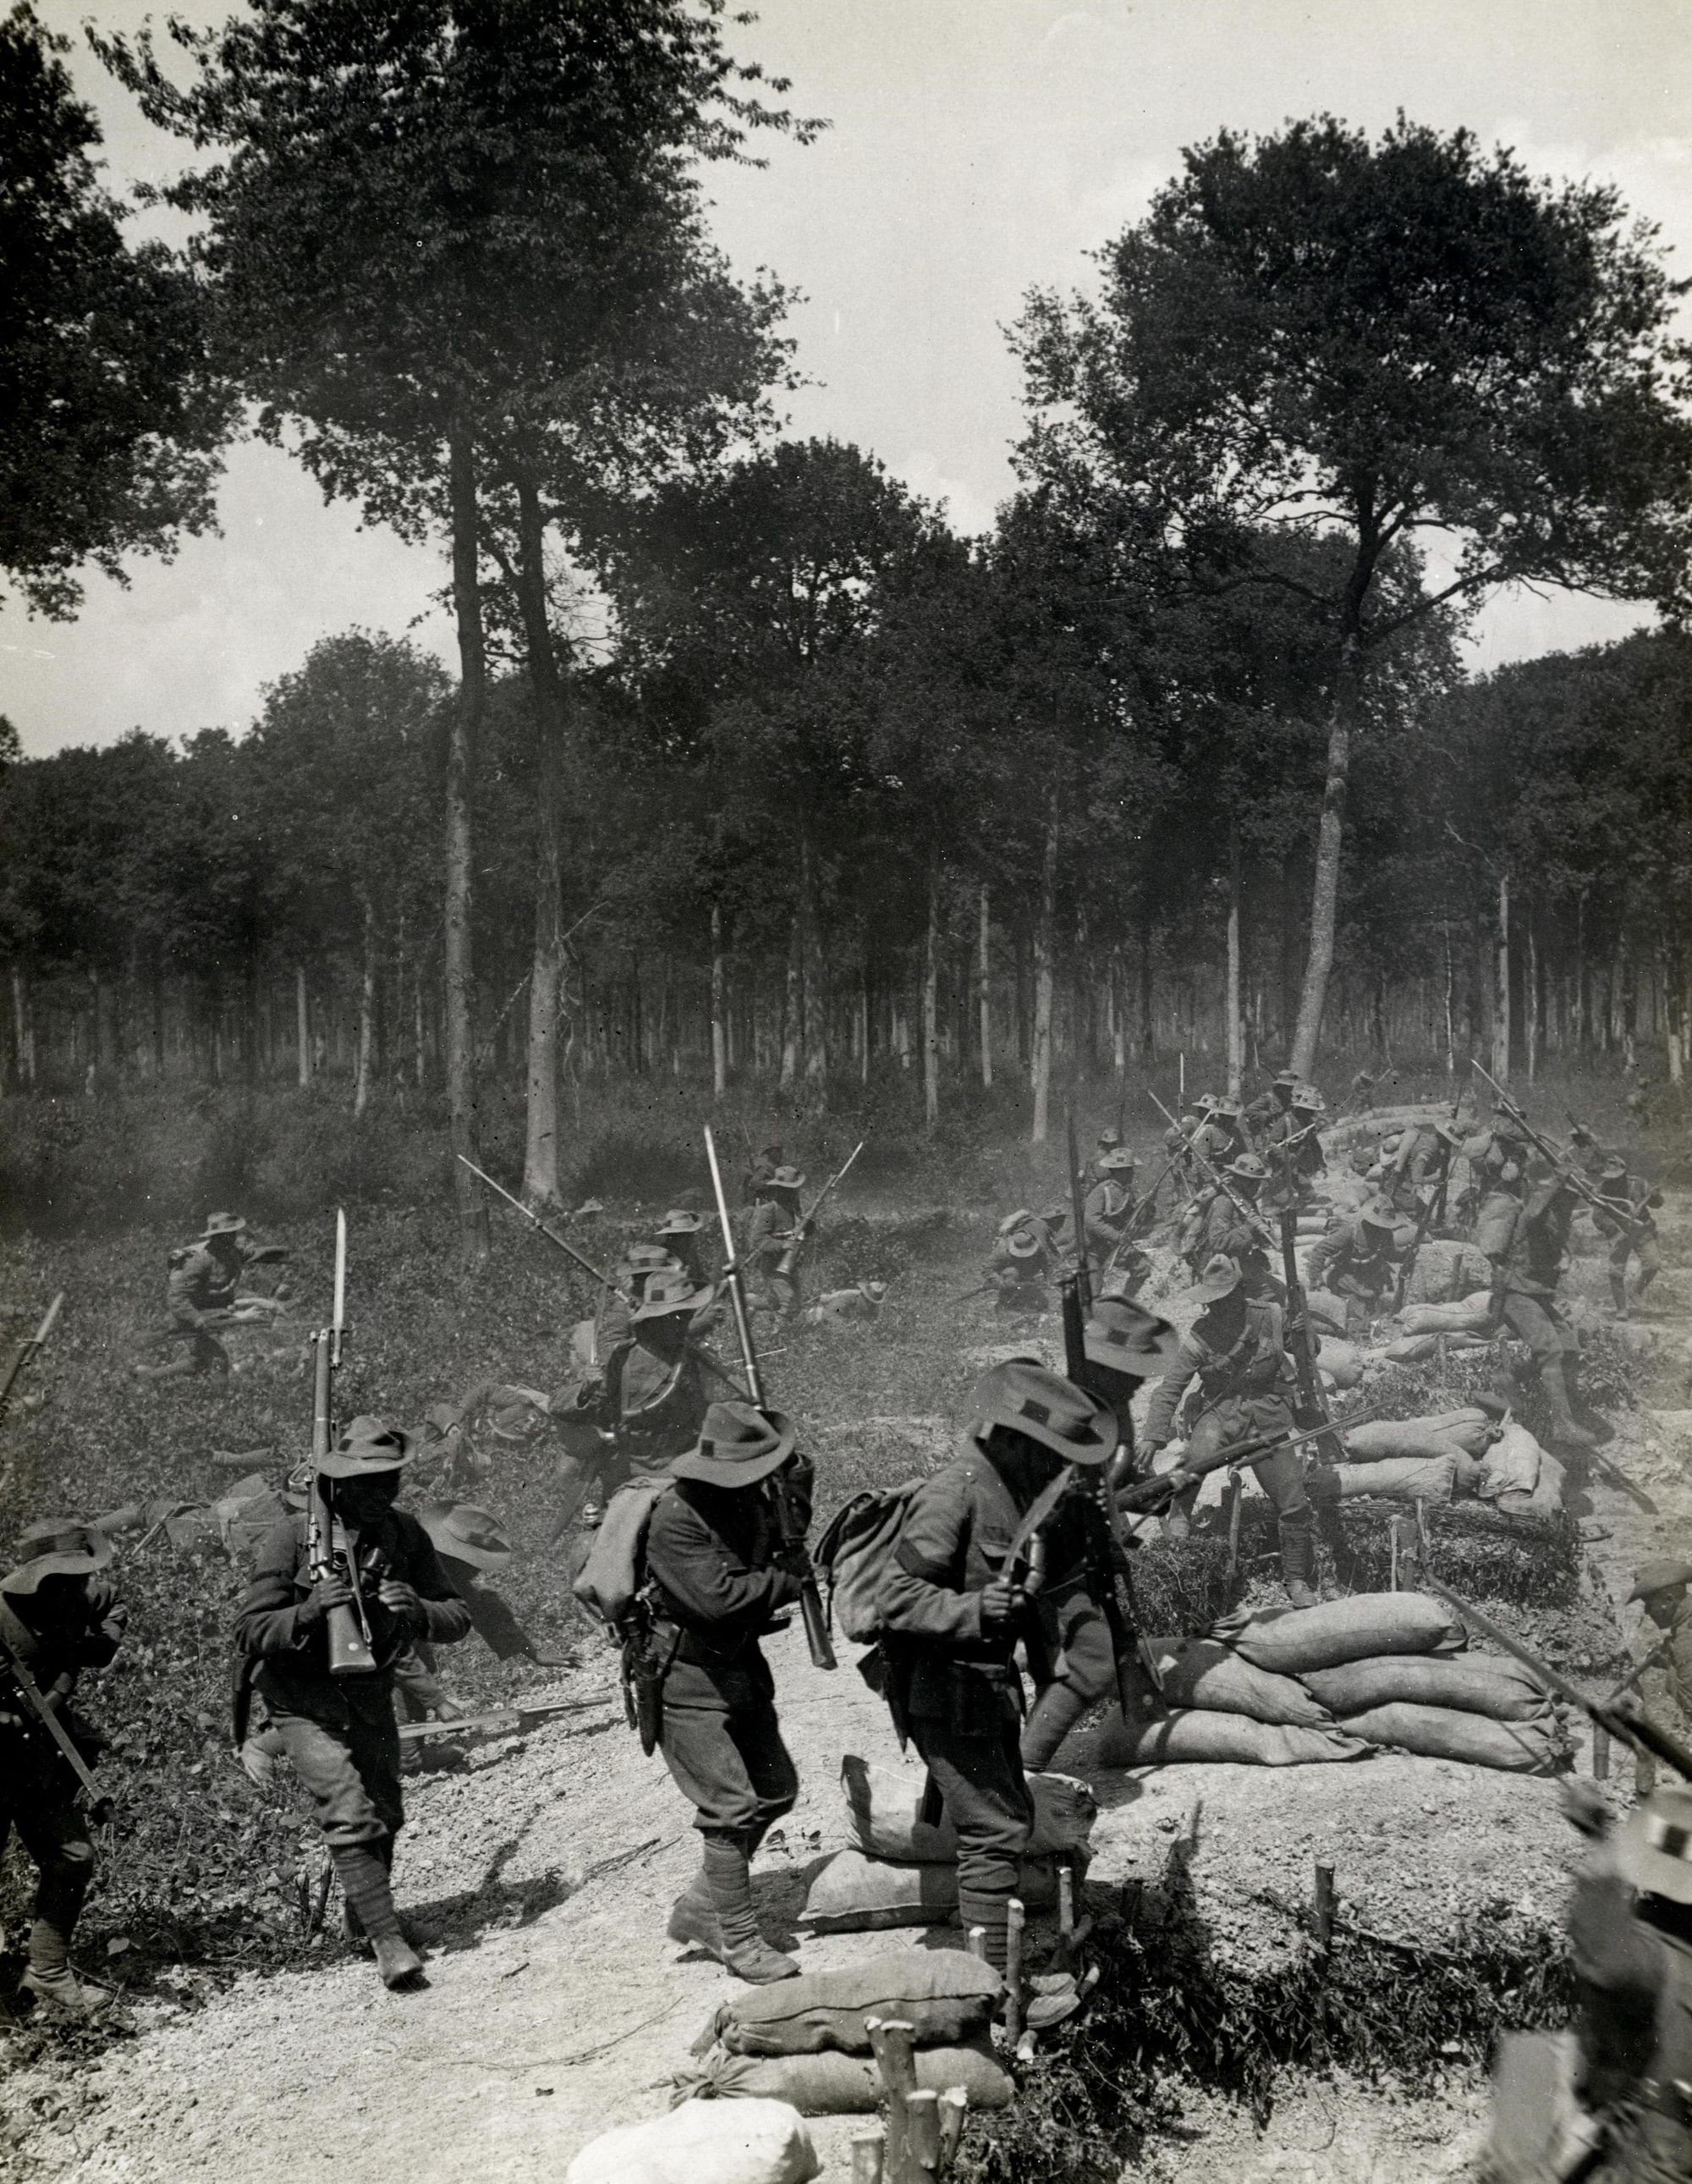 Photojournalism after the end of the First World War